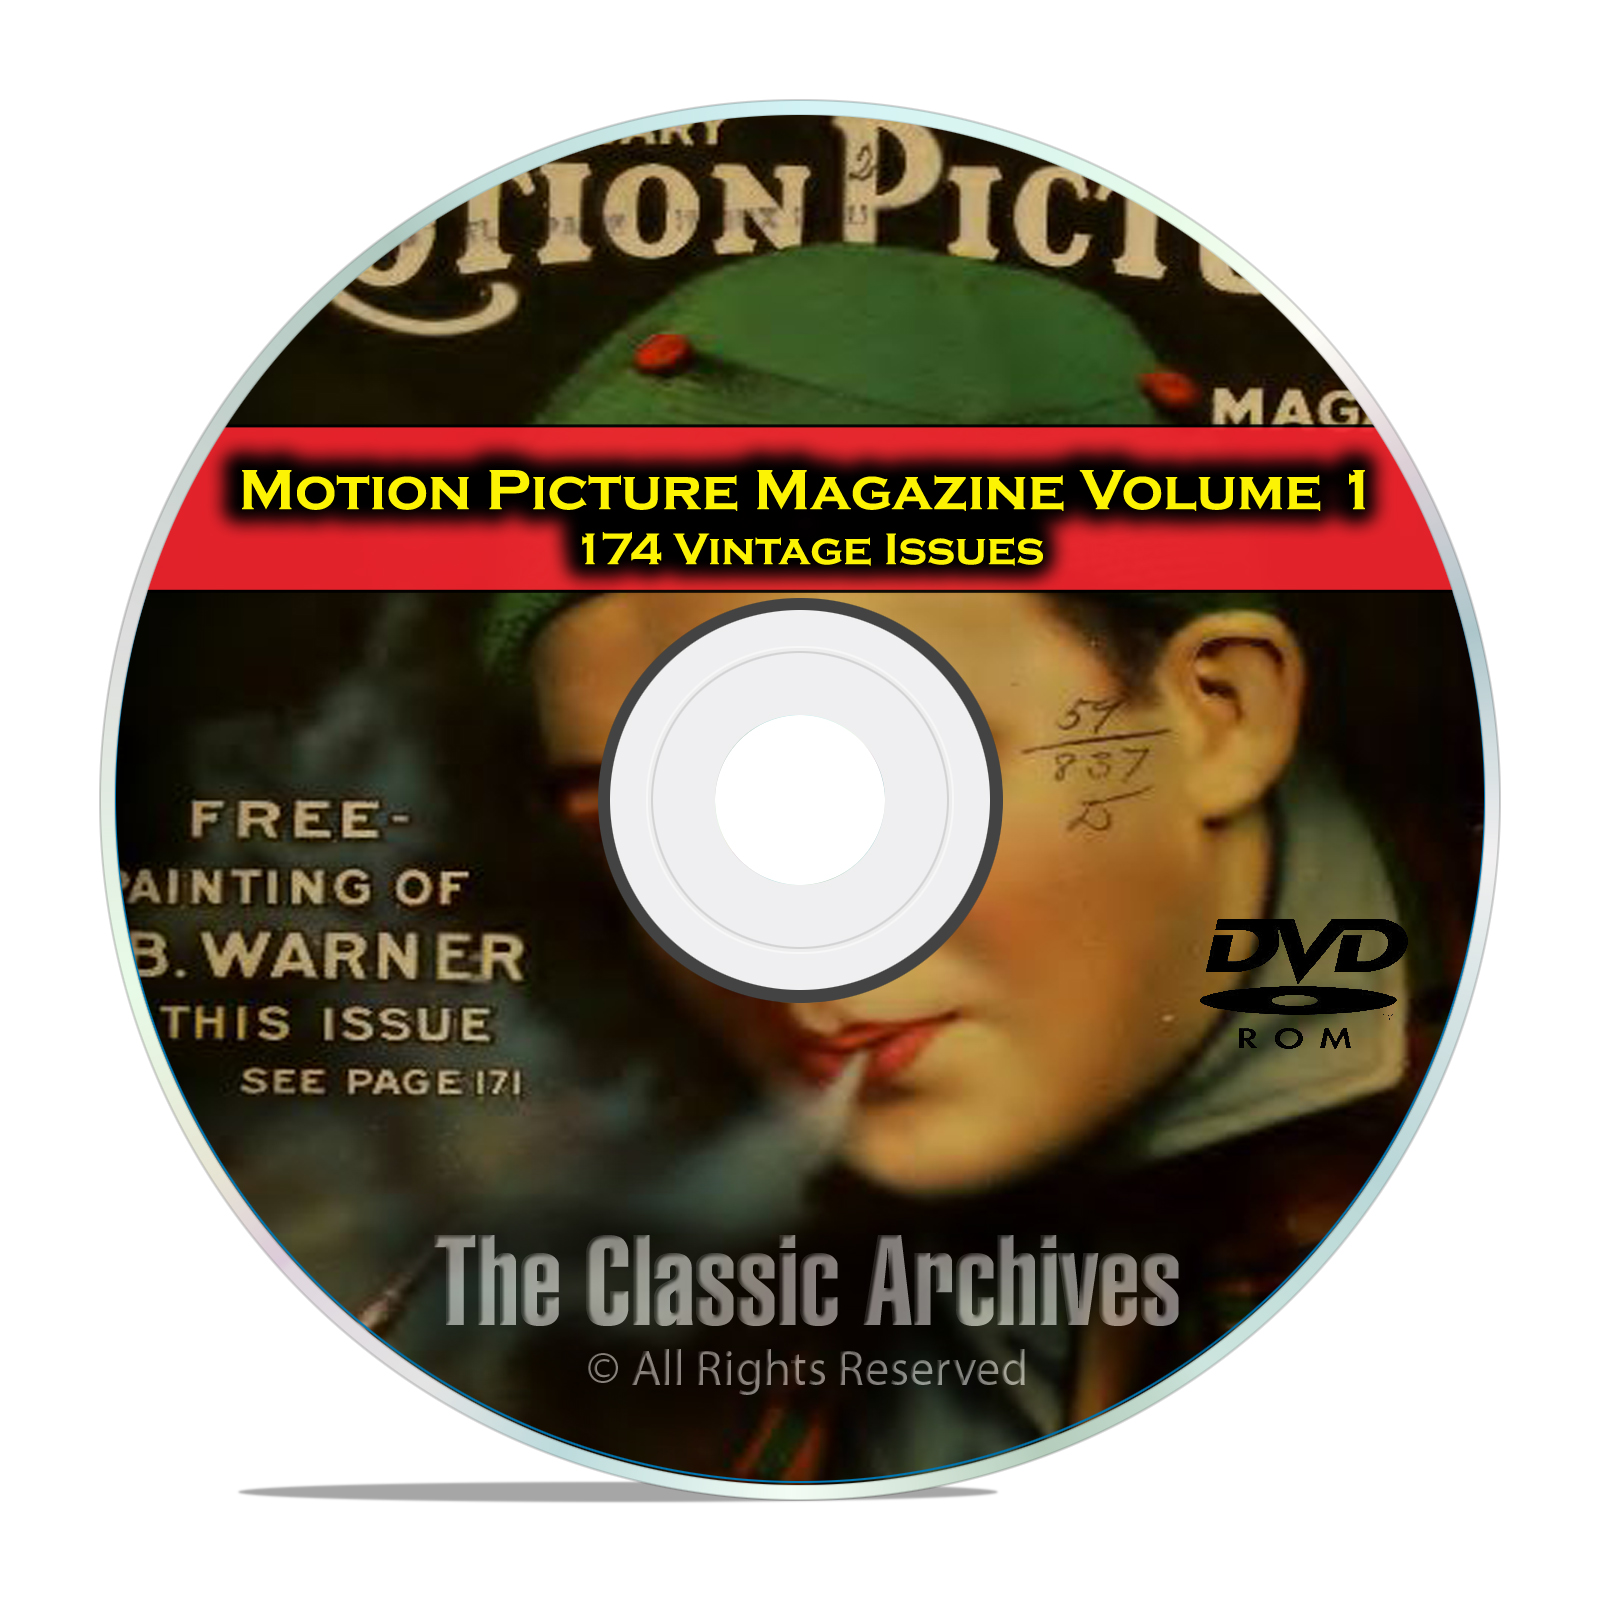 Motion Picture Movie Magazine, Volume 1, 174 Issues, 1911 - 1925, DVD